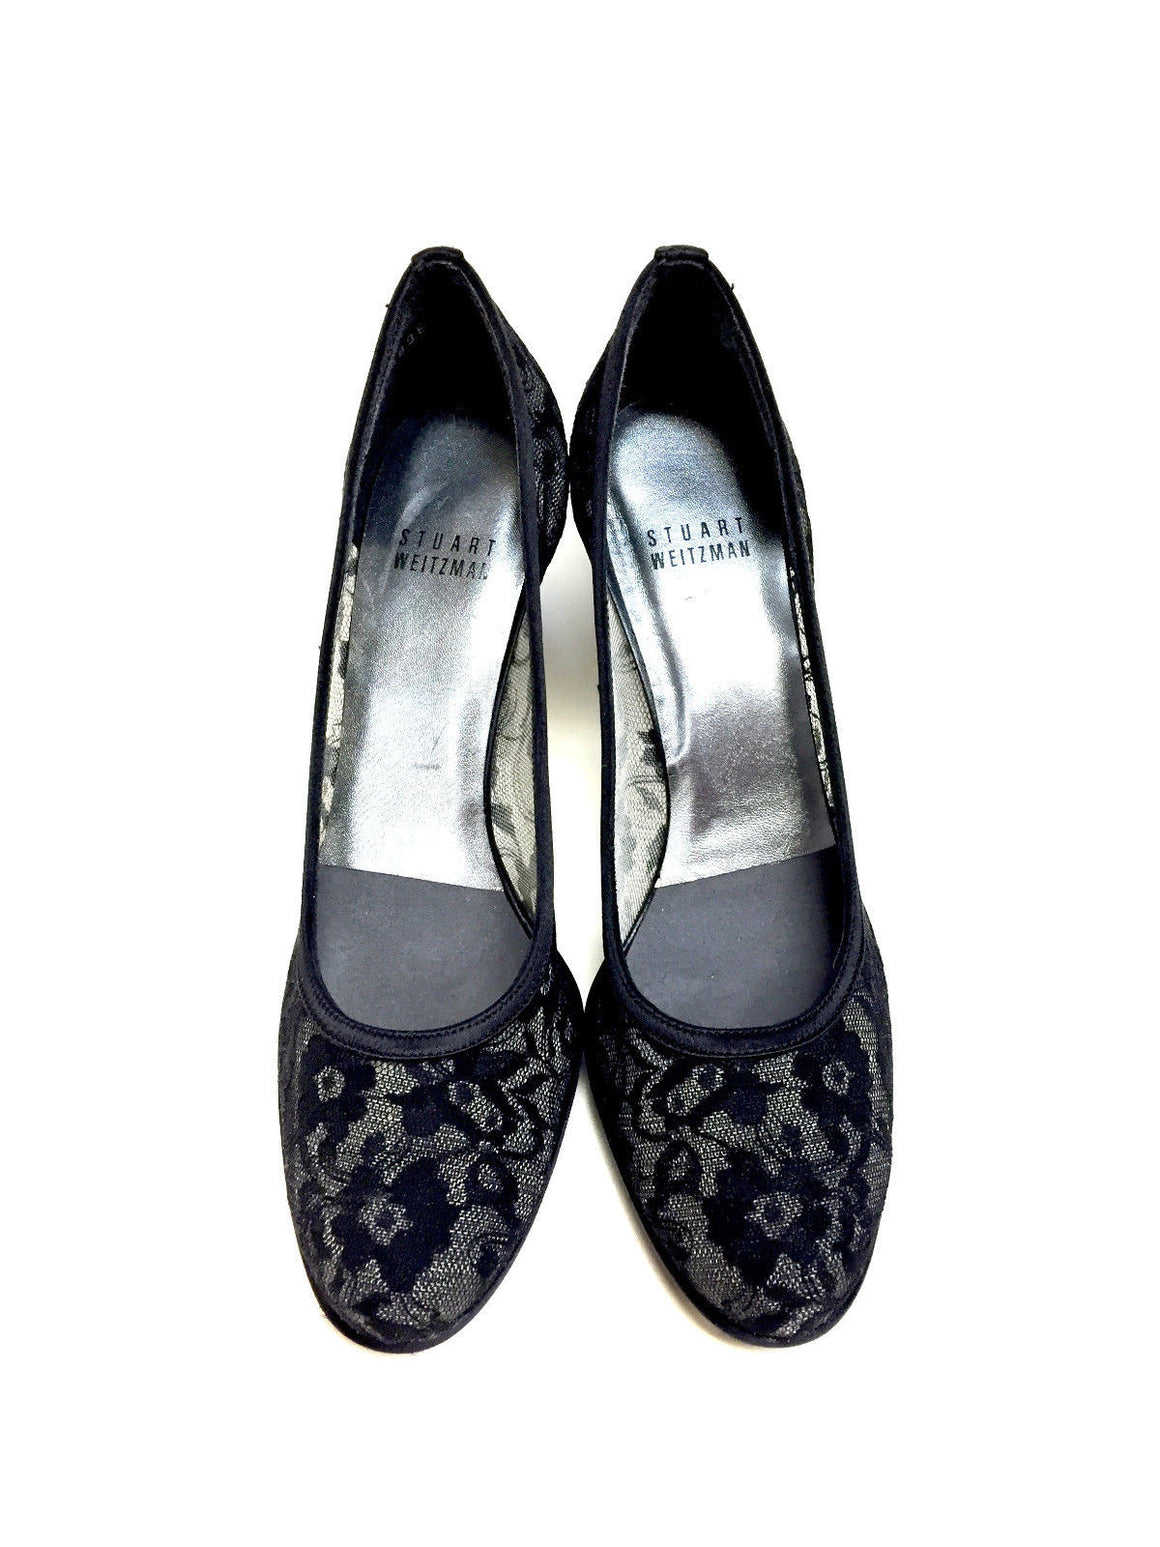 bisbiz.com STUART WEITZMAN  Black Lace Satin Platform LACESWOON Heel Pumps Shoes  Size: 7N - Bis Luxury Resale